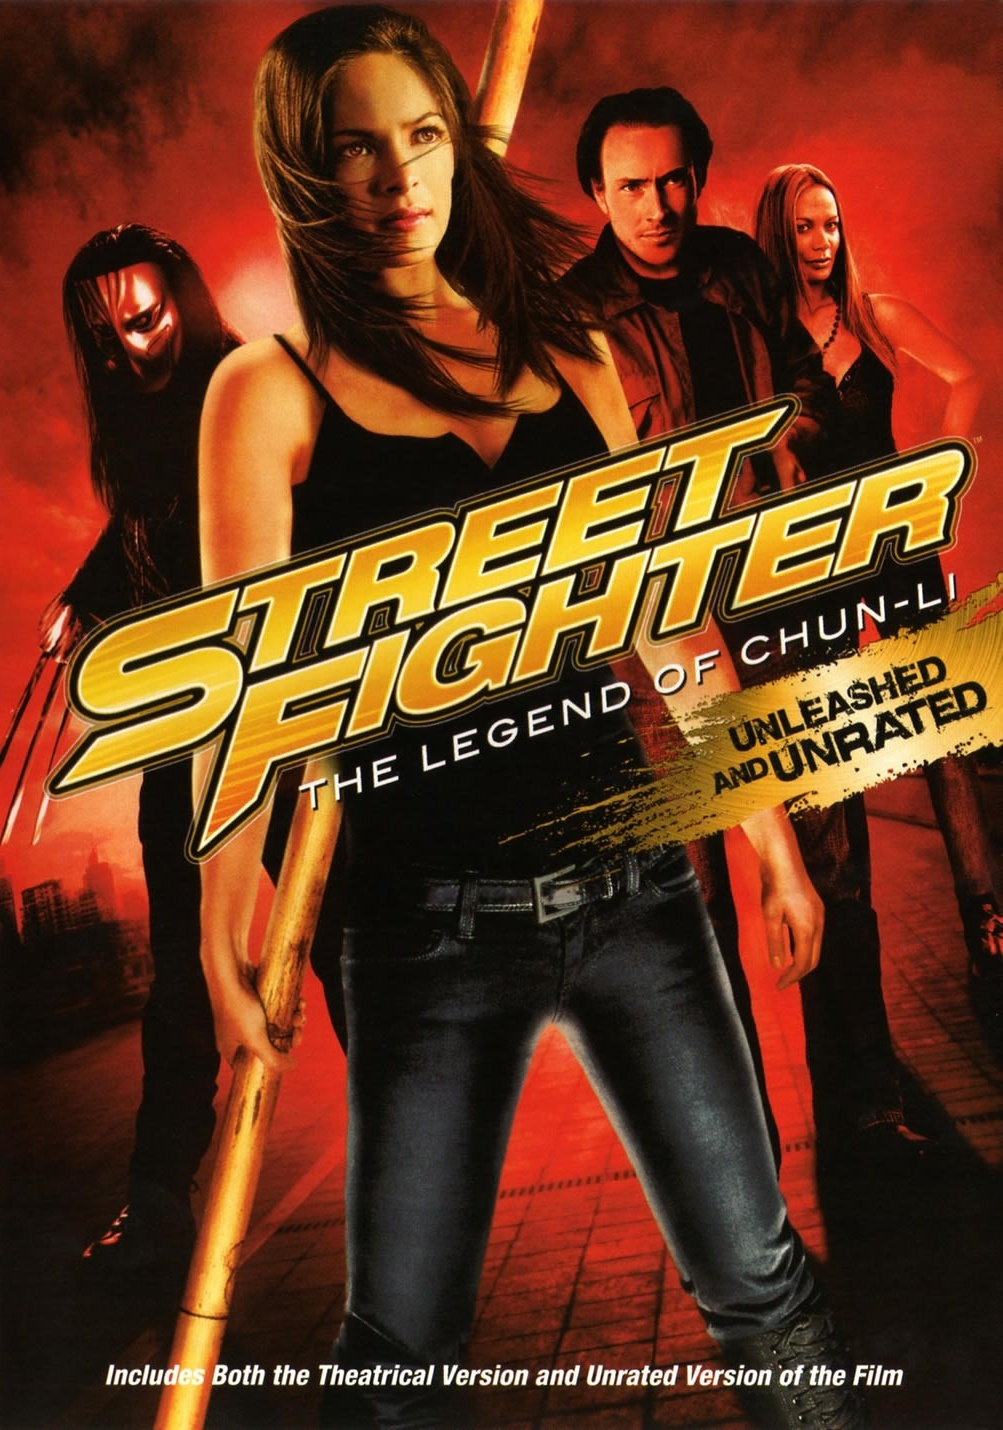 Stiahni si Filmy CZ/SK dabing     Street Fighter: Legenda z Hong Kongu / Street Fighter: The Legend of Chun-Li (2009)(CZ)